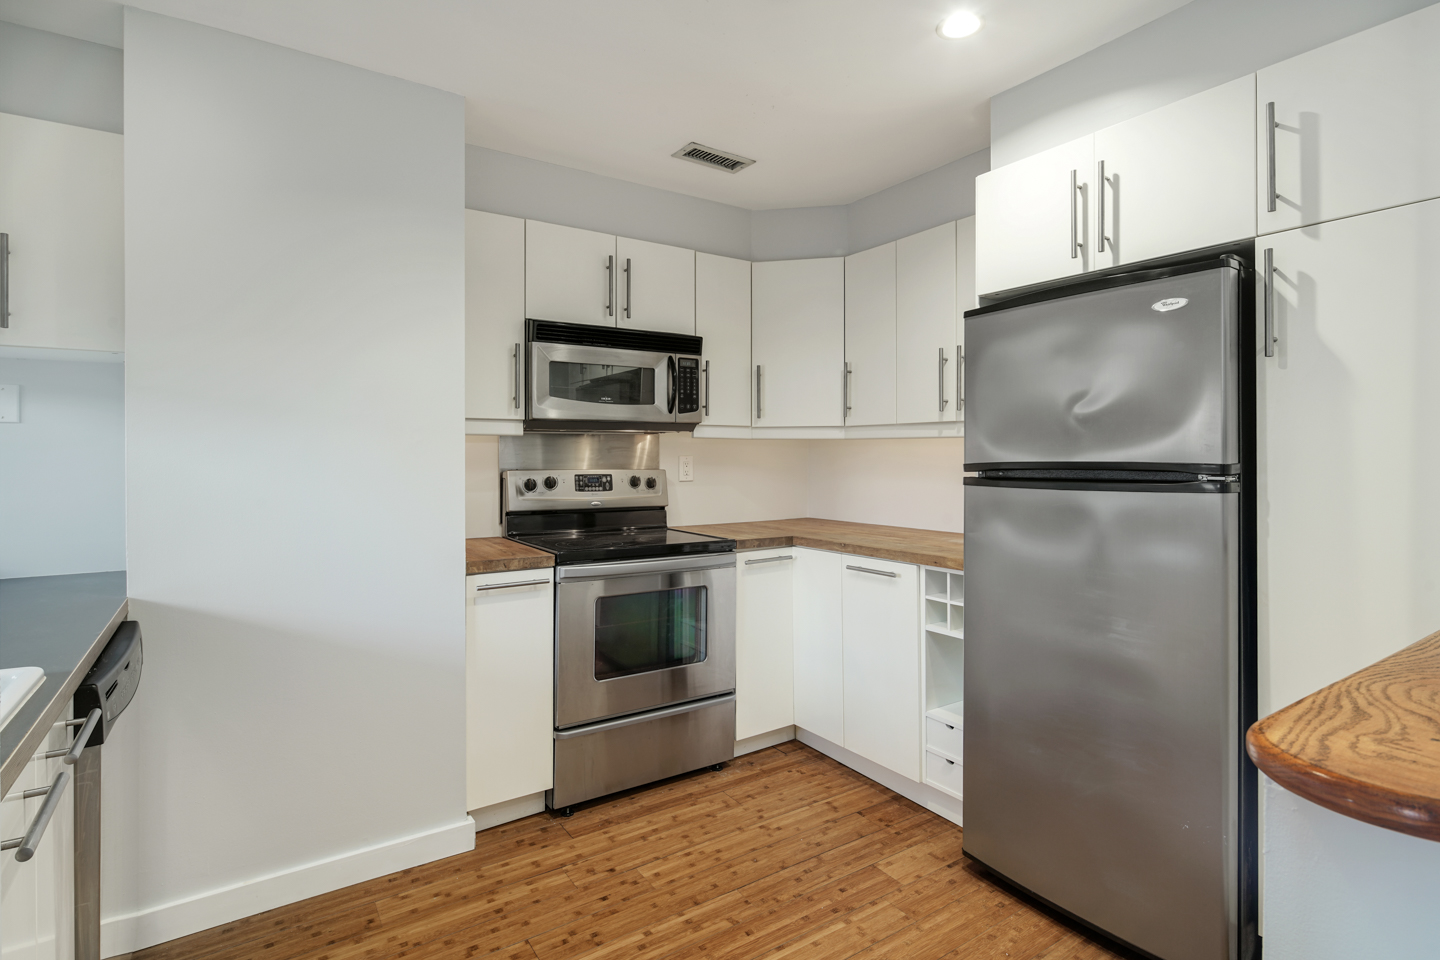 315 New St Unit 410 reshoot-MLS-1.jpg